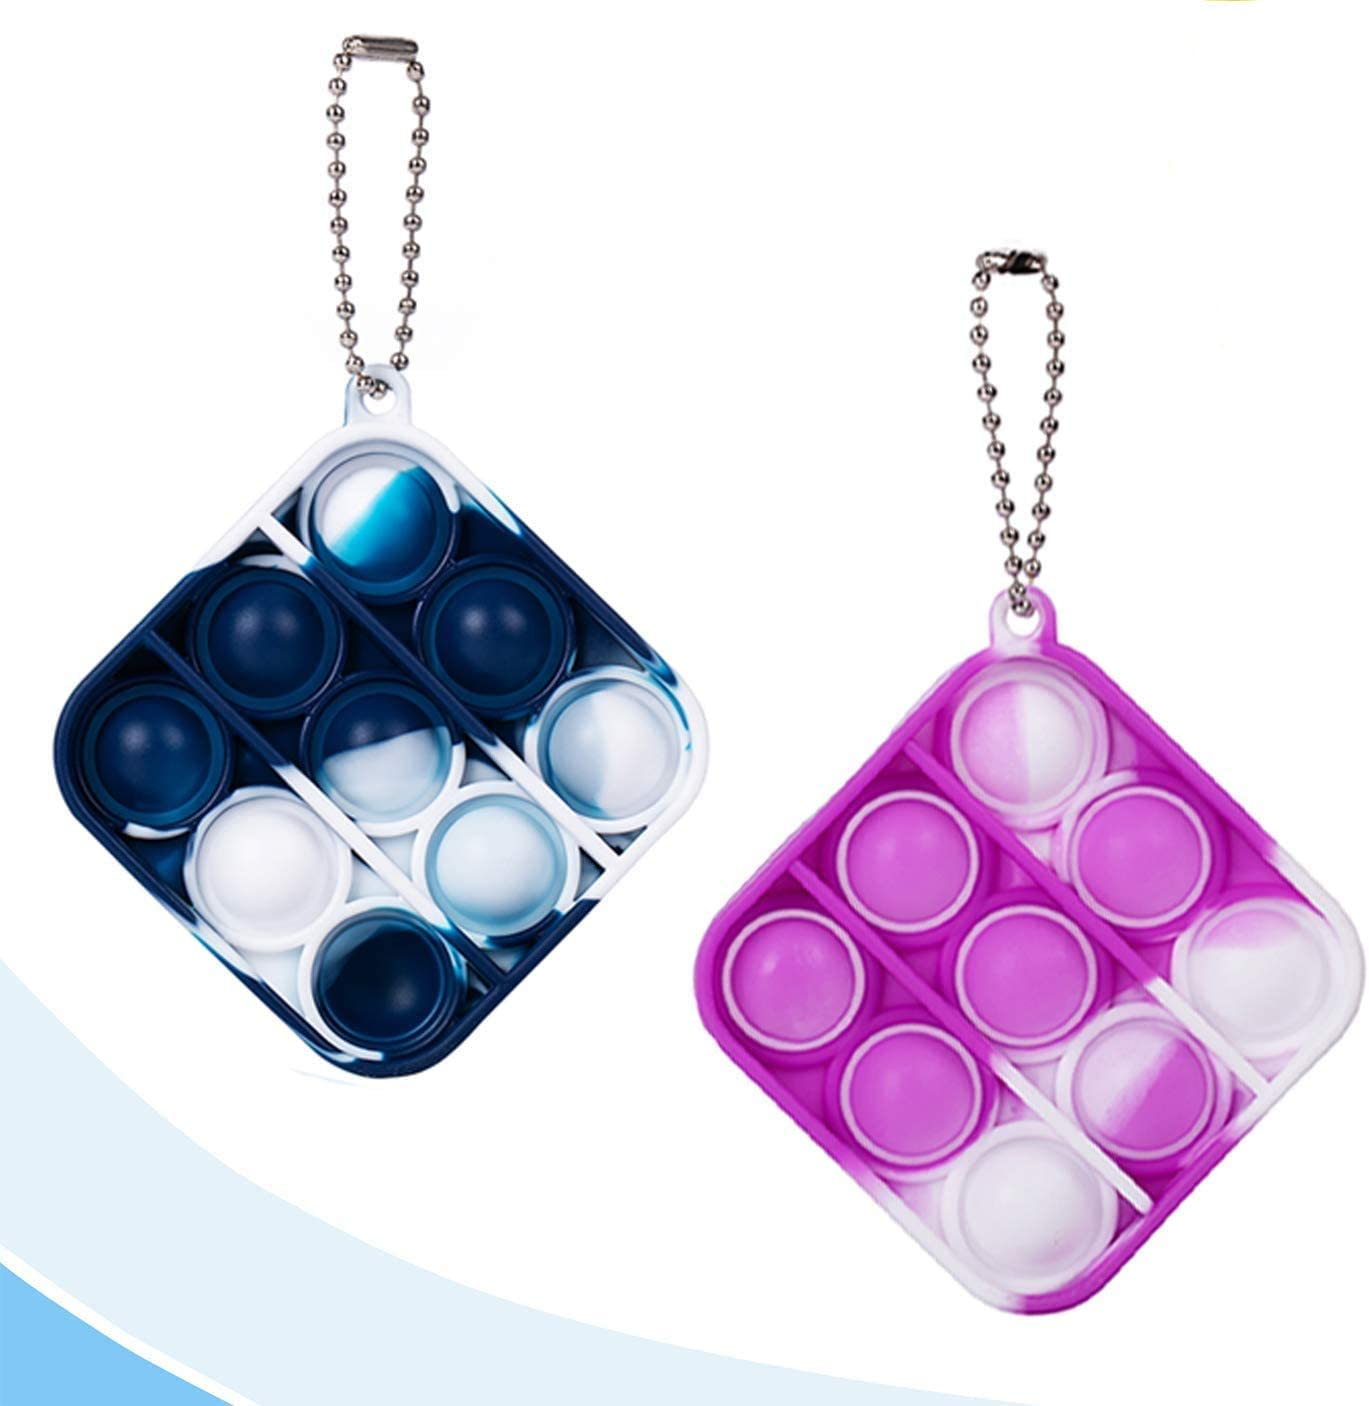 Bat Dimple Fidget Toys Mini Stress Reliever Hand Toys Keychain Toy Bubble Wrap Pop Anxiety Stress Relief Office Desk Toys for Kids Adults White